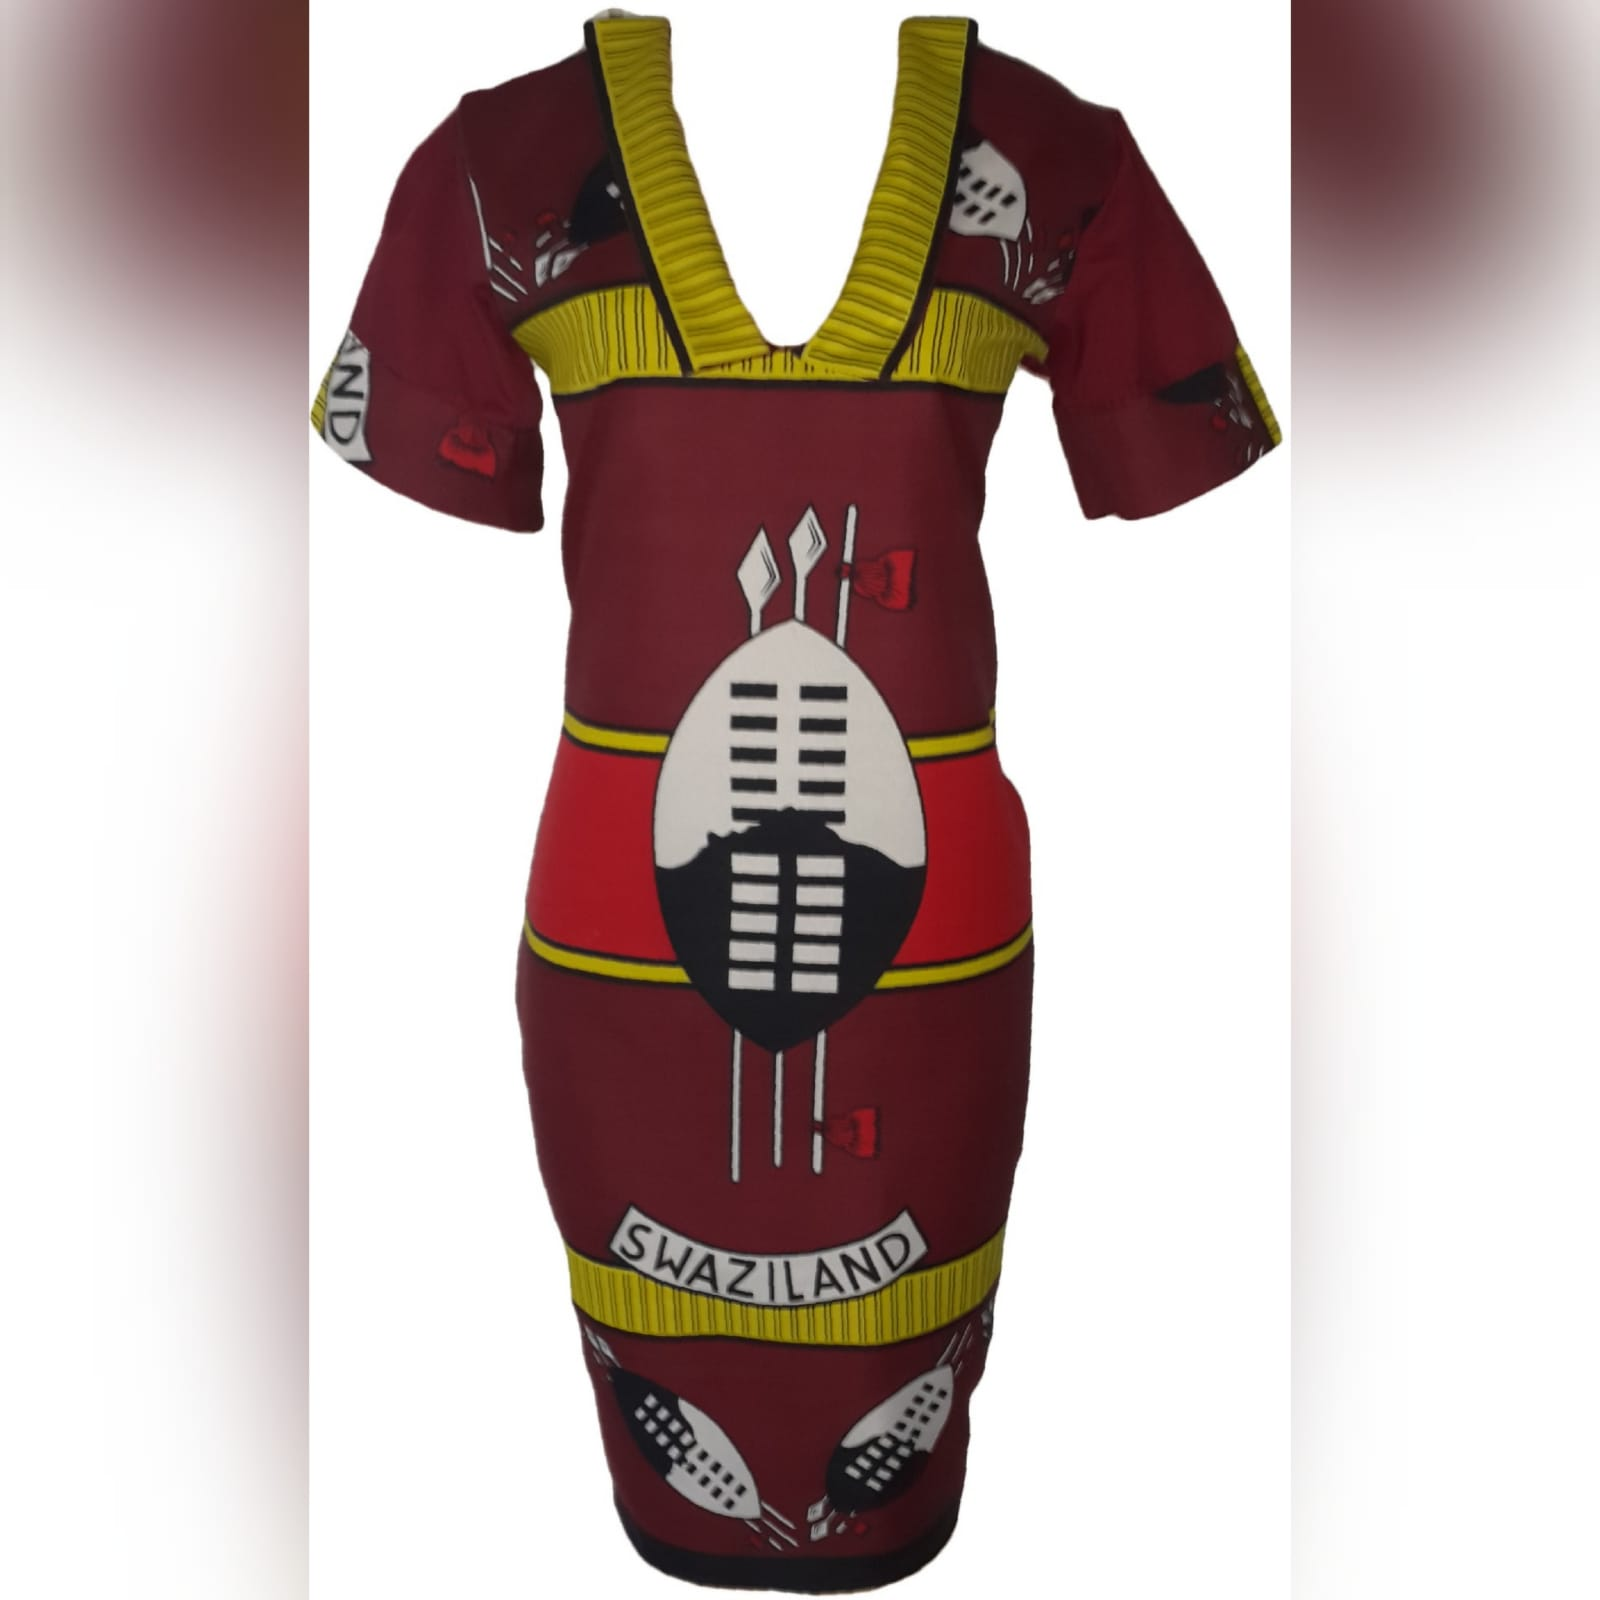 Traditional swati dress with matching swati doek 5 traditional swati dress with a v neckline, finished with a collar design that can be worn in 3 different ways. With a matching swati doek.